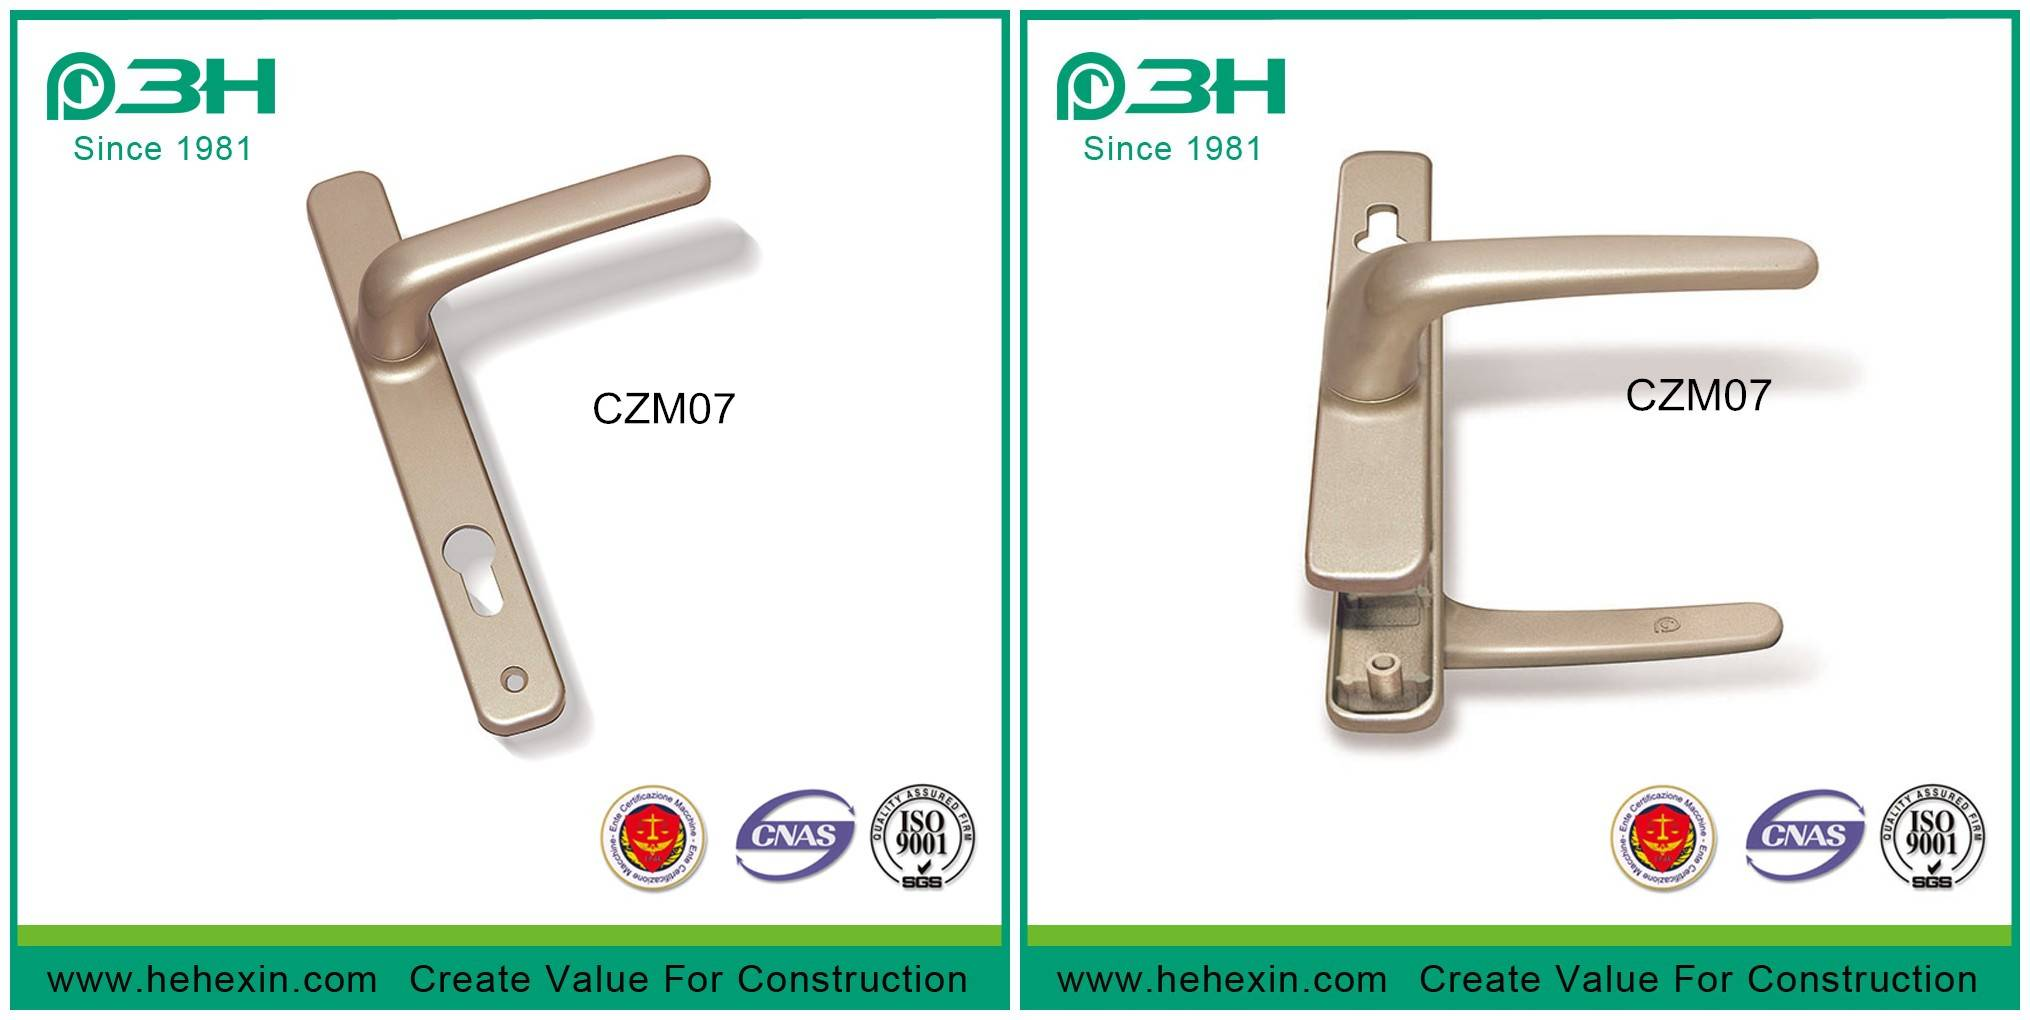 Hot selling aluminium door & window handle of Zinc alloy, CZM07